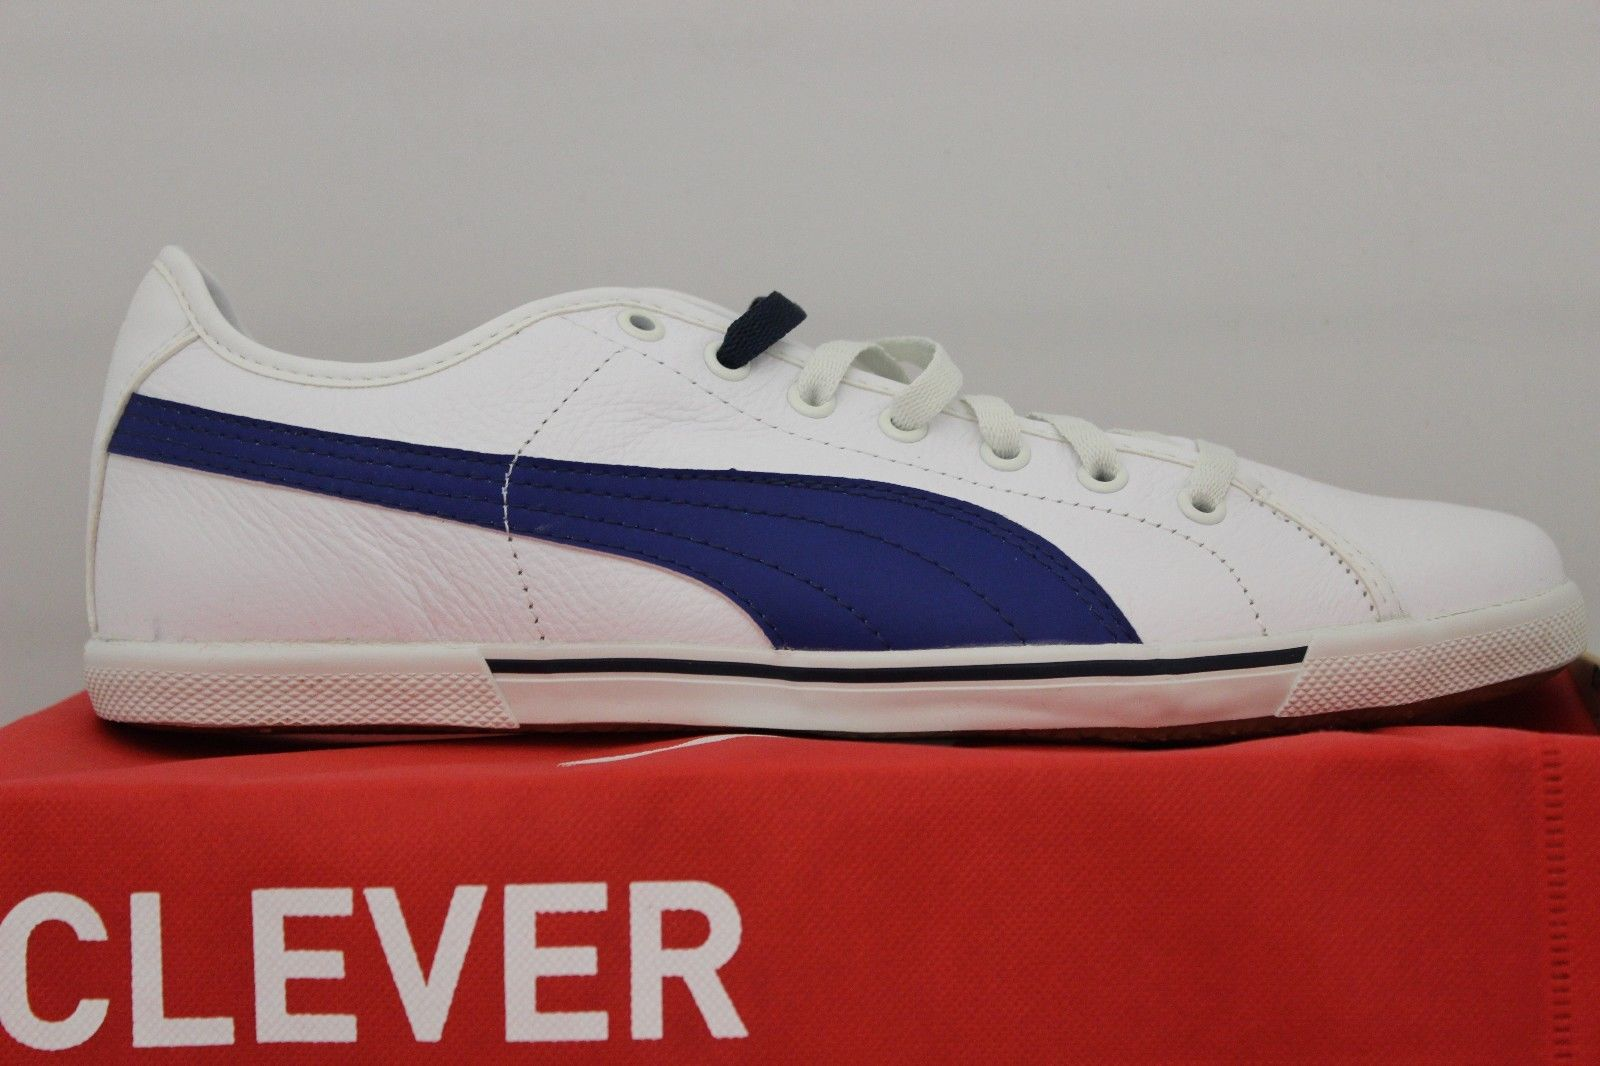 Men's Benecio Leather White/Blue 35103818 Economical, stylish, and eye-catching shoes